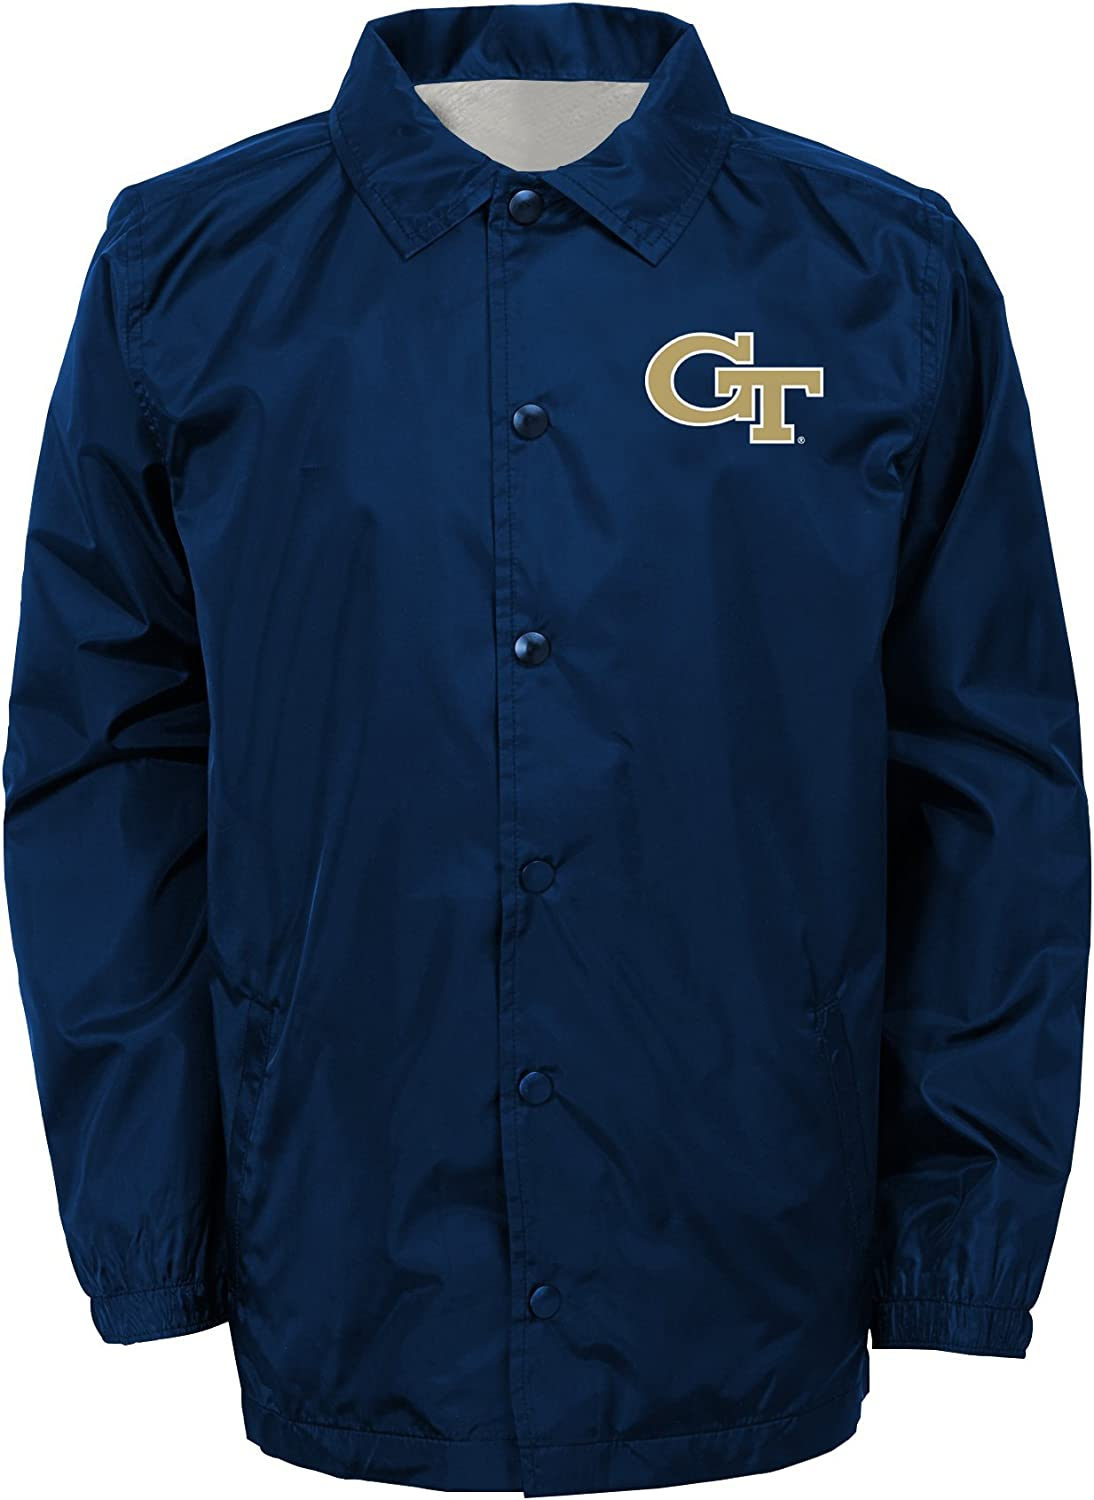 NCAA by Outerstuff NCAA Youth Boys Bravo Coaches Jacket